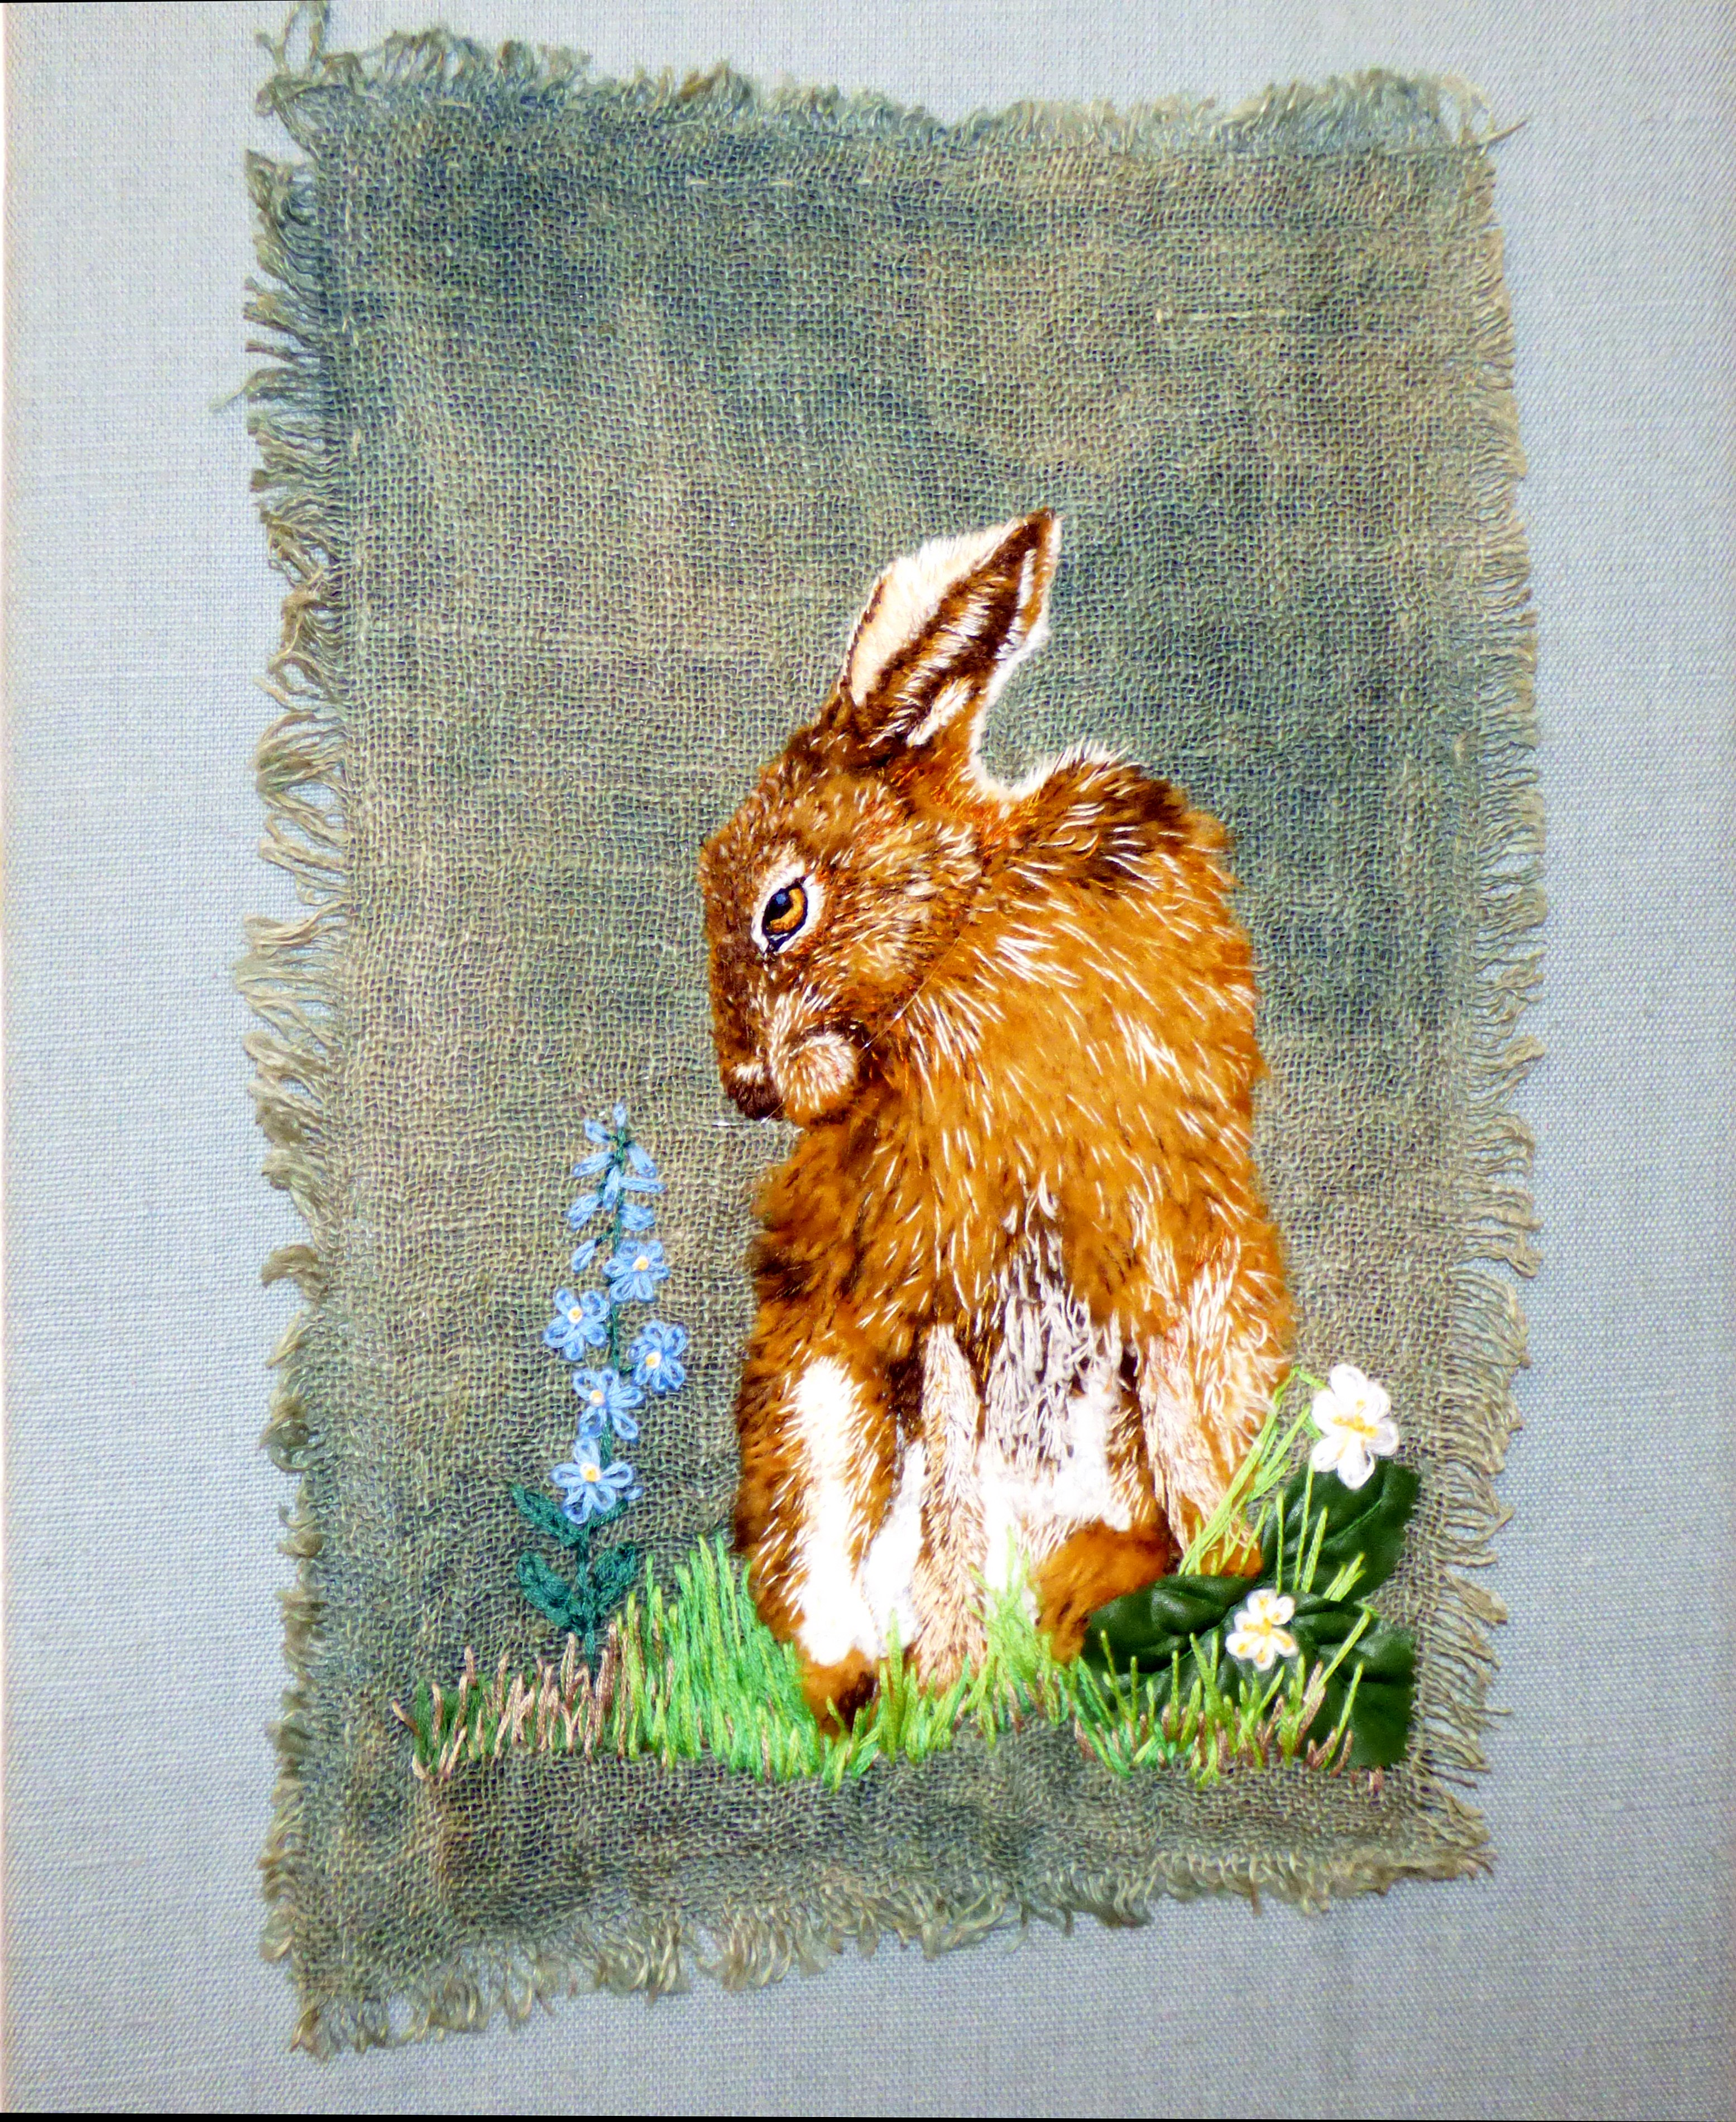 HARE by Linda Herbert, hand dyed ground and sculpted fur fabric with hand embroidery